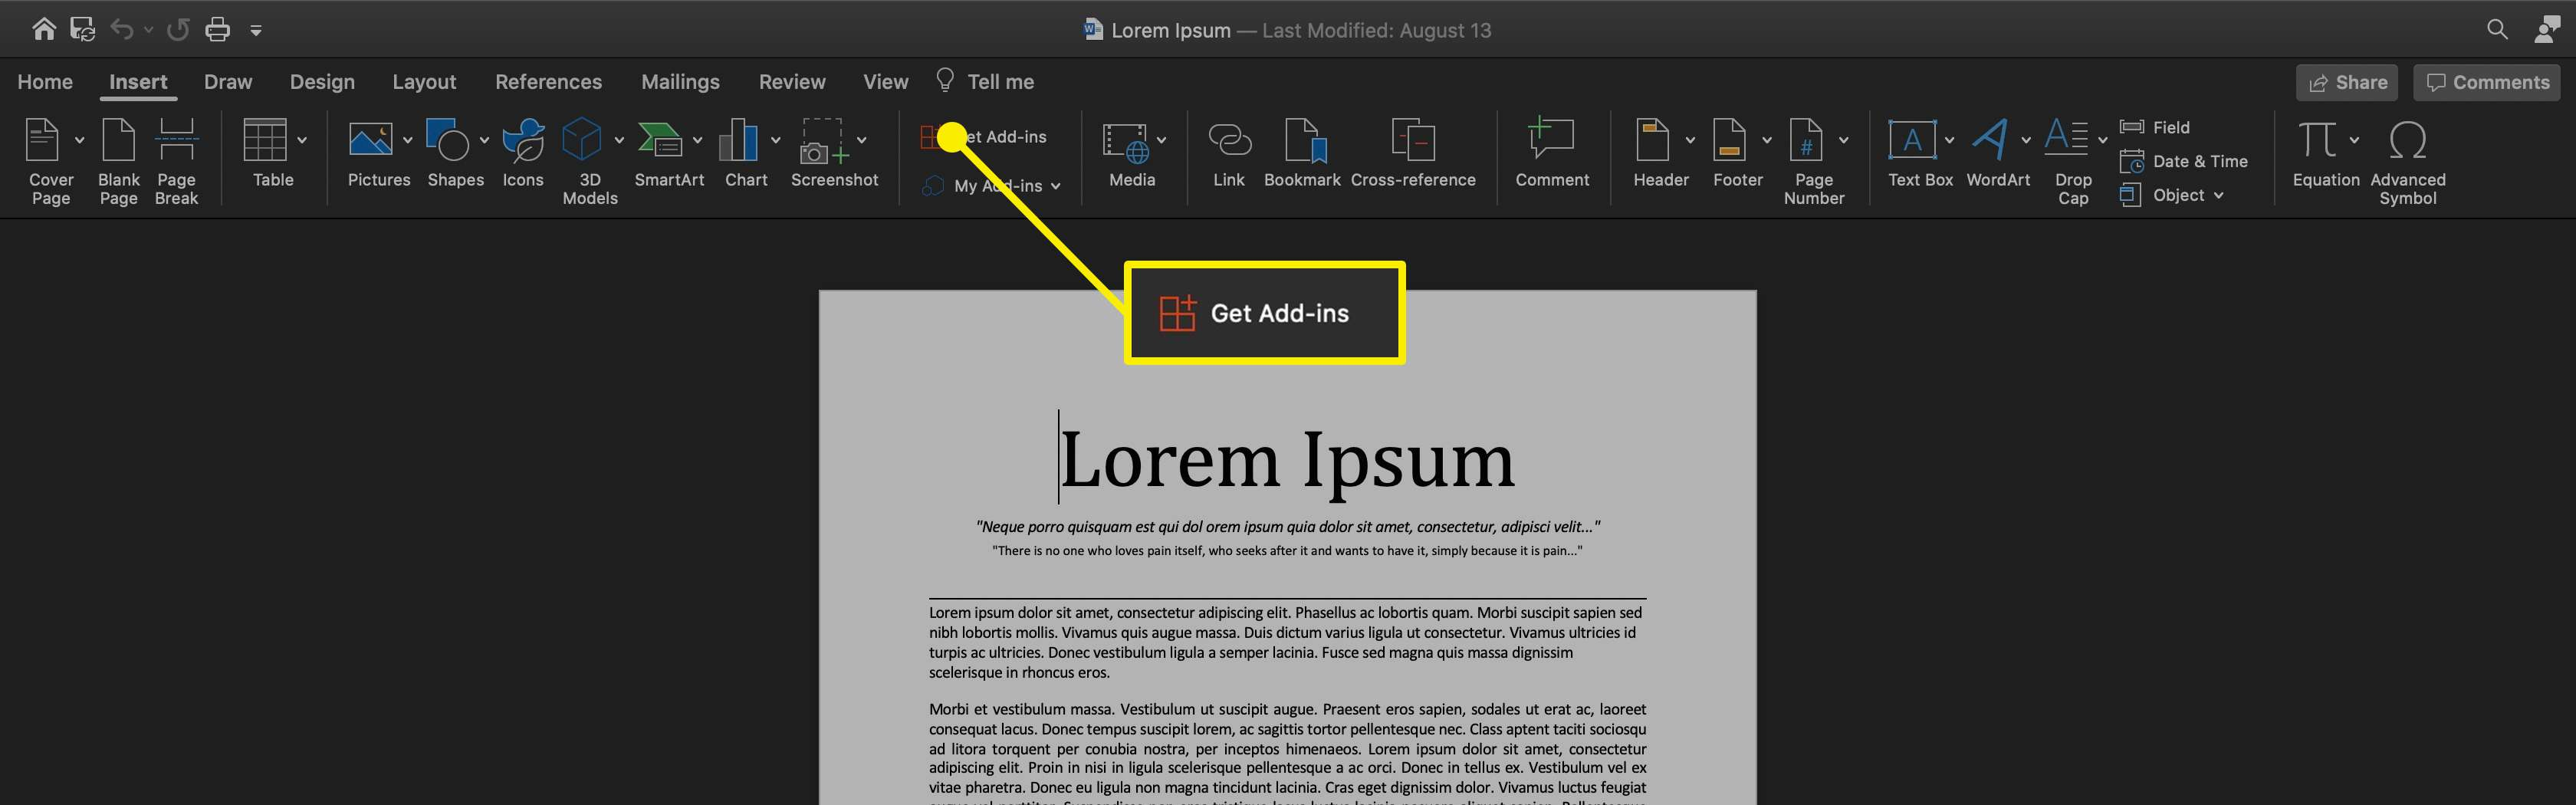 The Get Add Ins option in Word for macOS